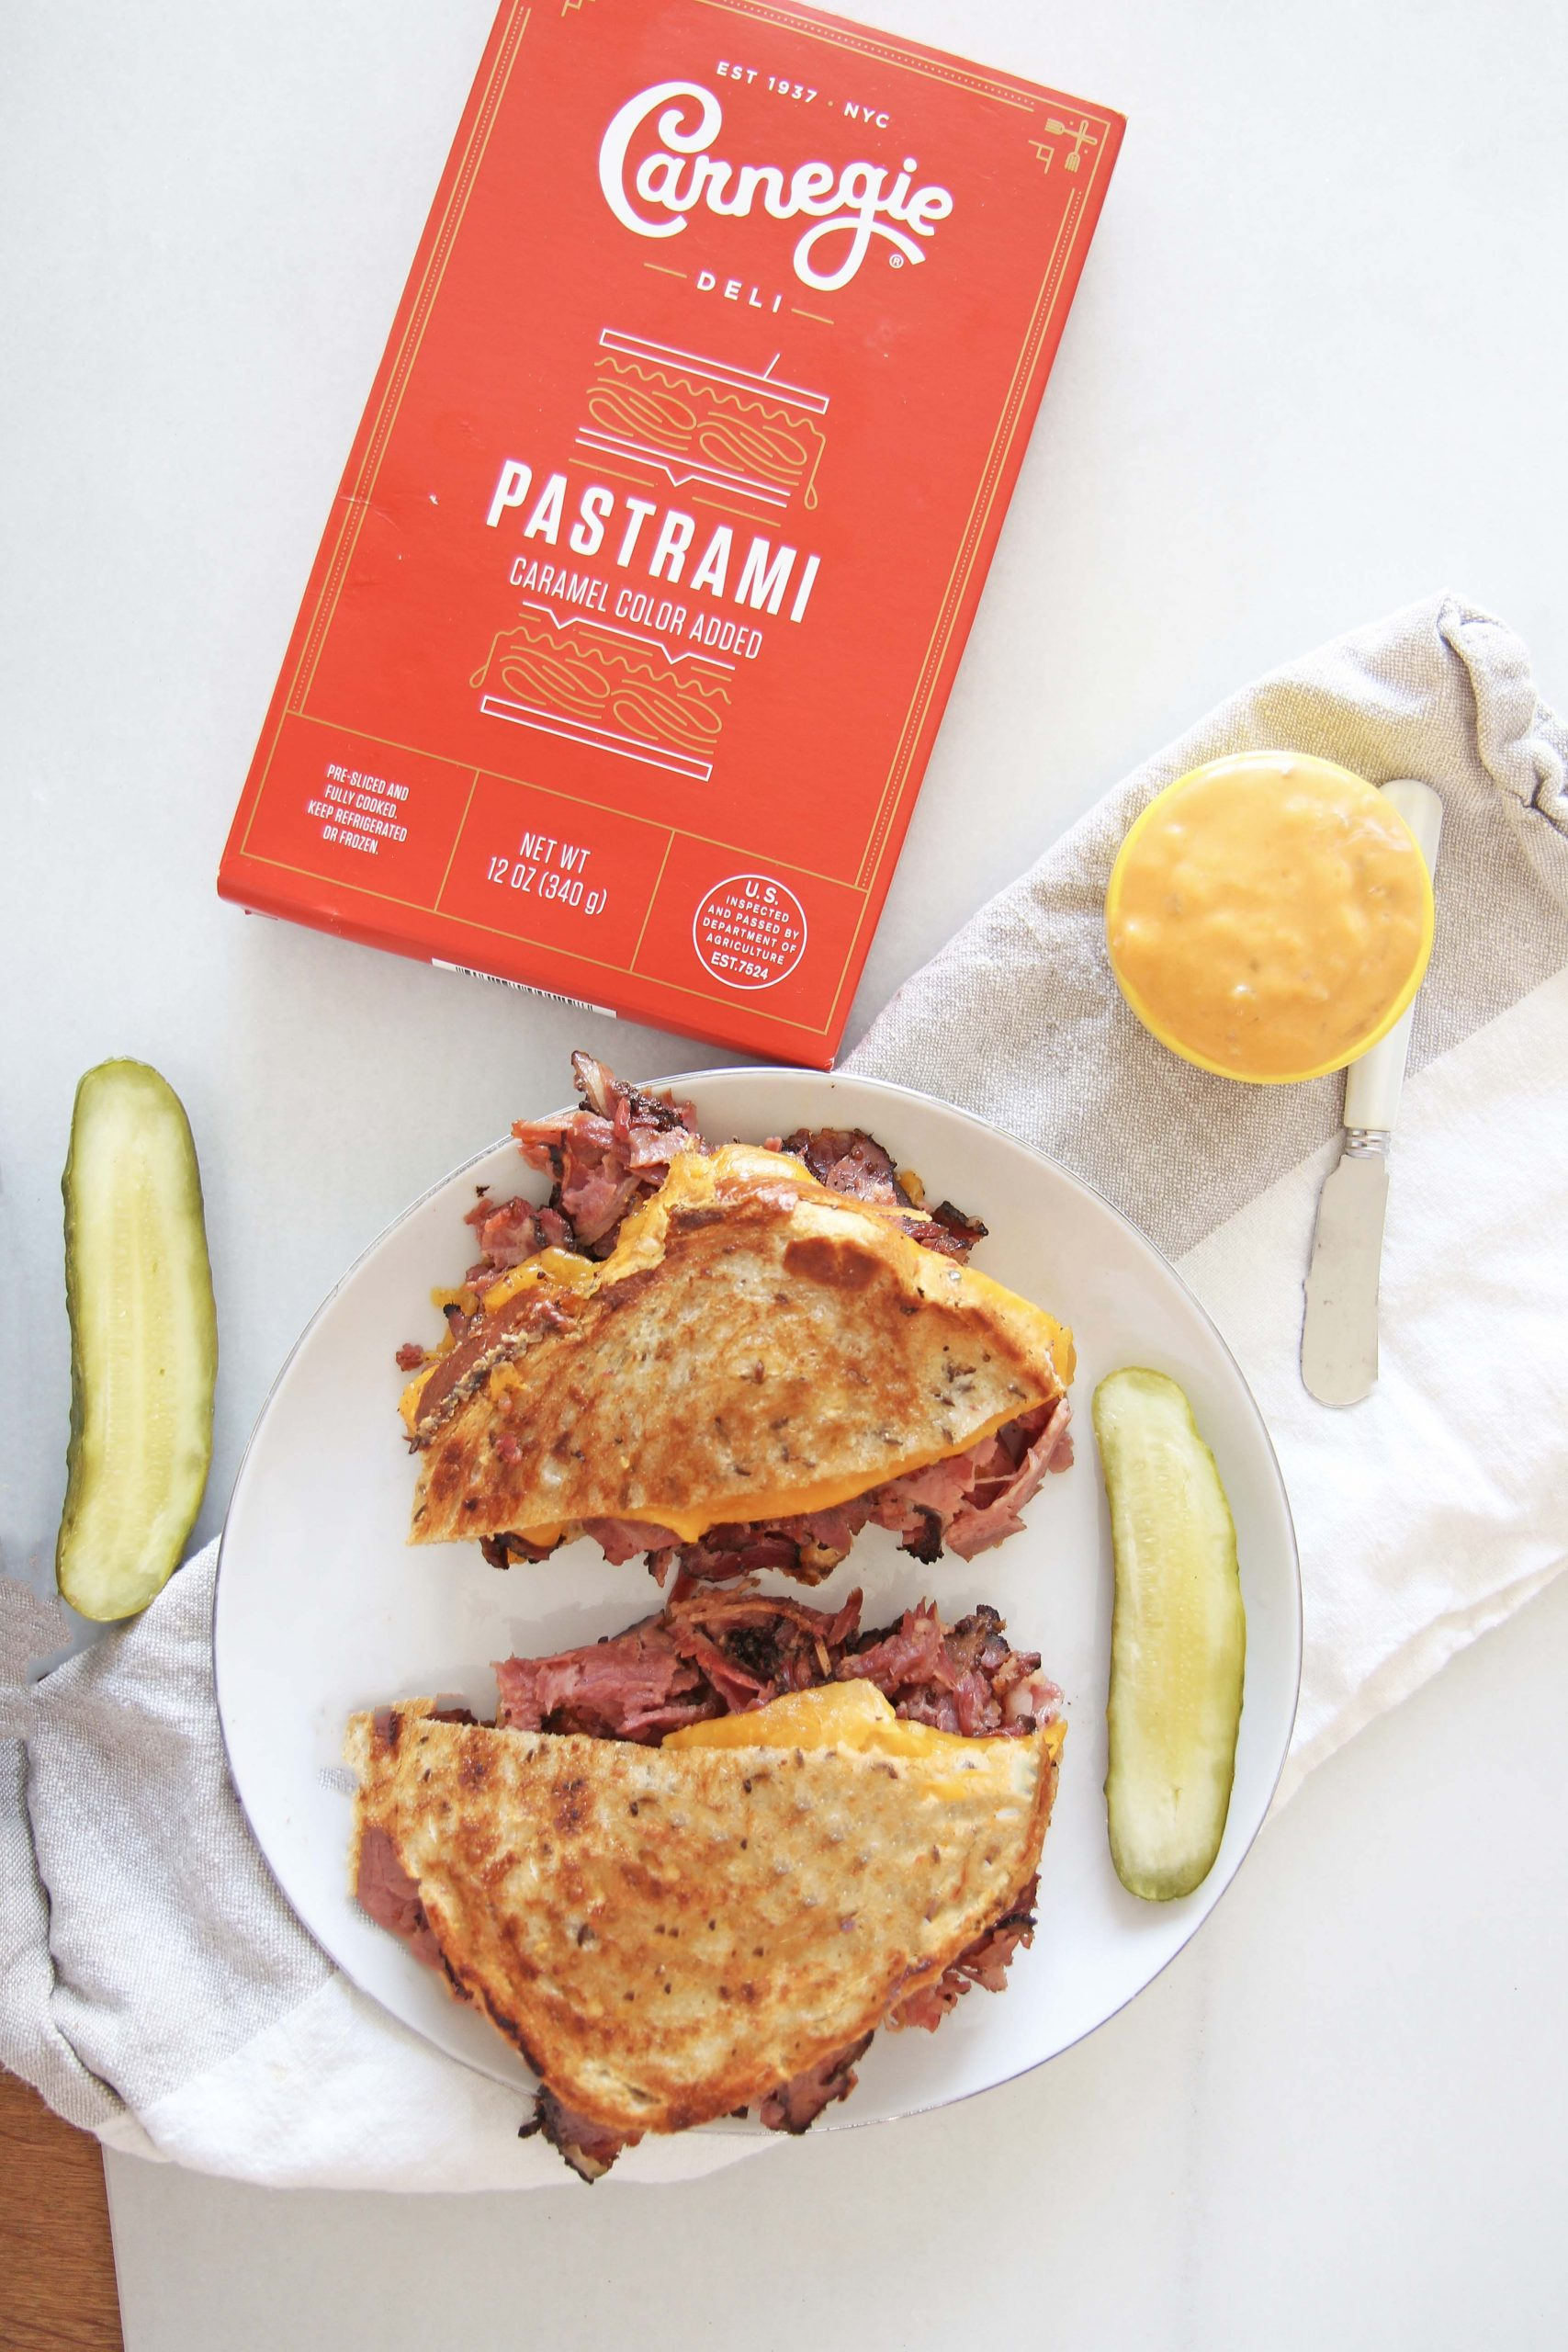 Jewish Grilled Cheese Recipe. This is classic NYC eats. The iconic Carnegie Deli has the best pastrami. I used their pastrami, half sour pickles, and Russian dressing to make the ultimate grilled cheese. Happy Cooking! #NYCeats #grilledcheese